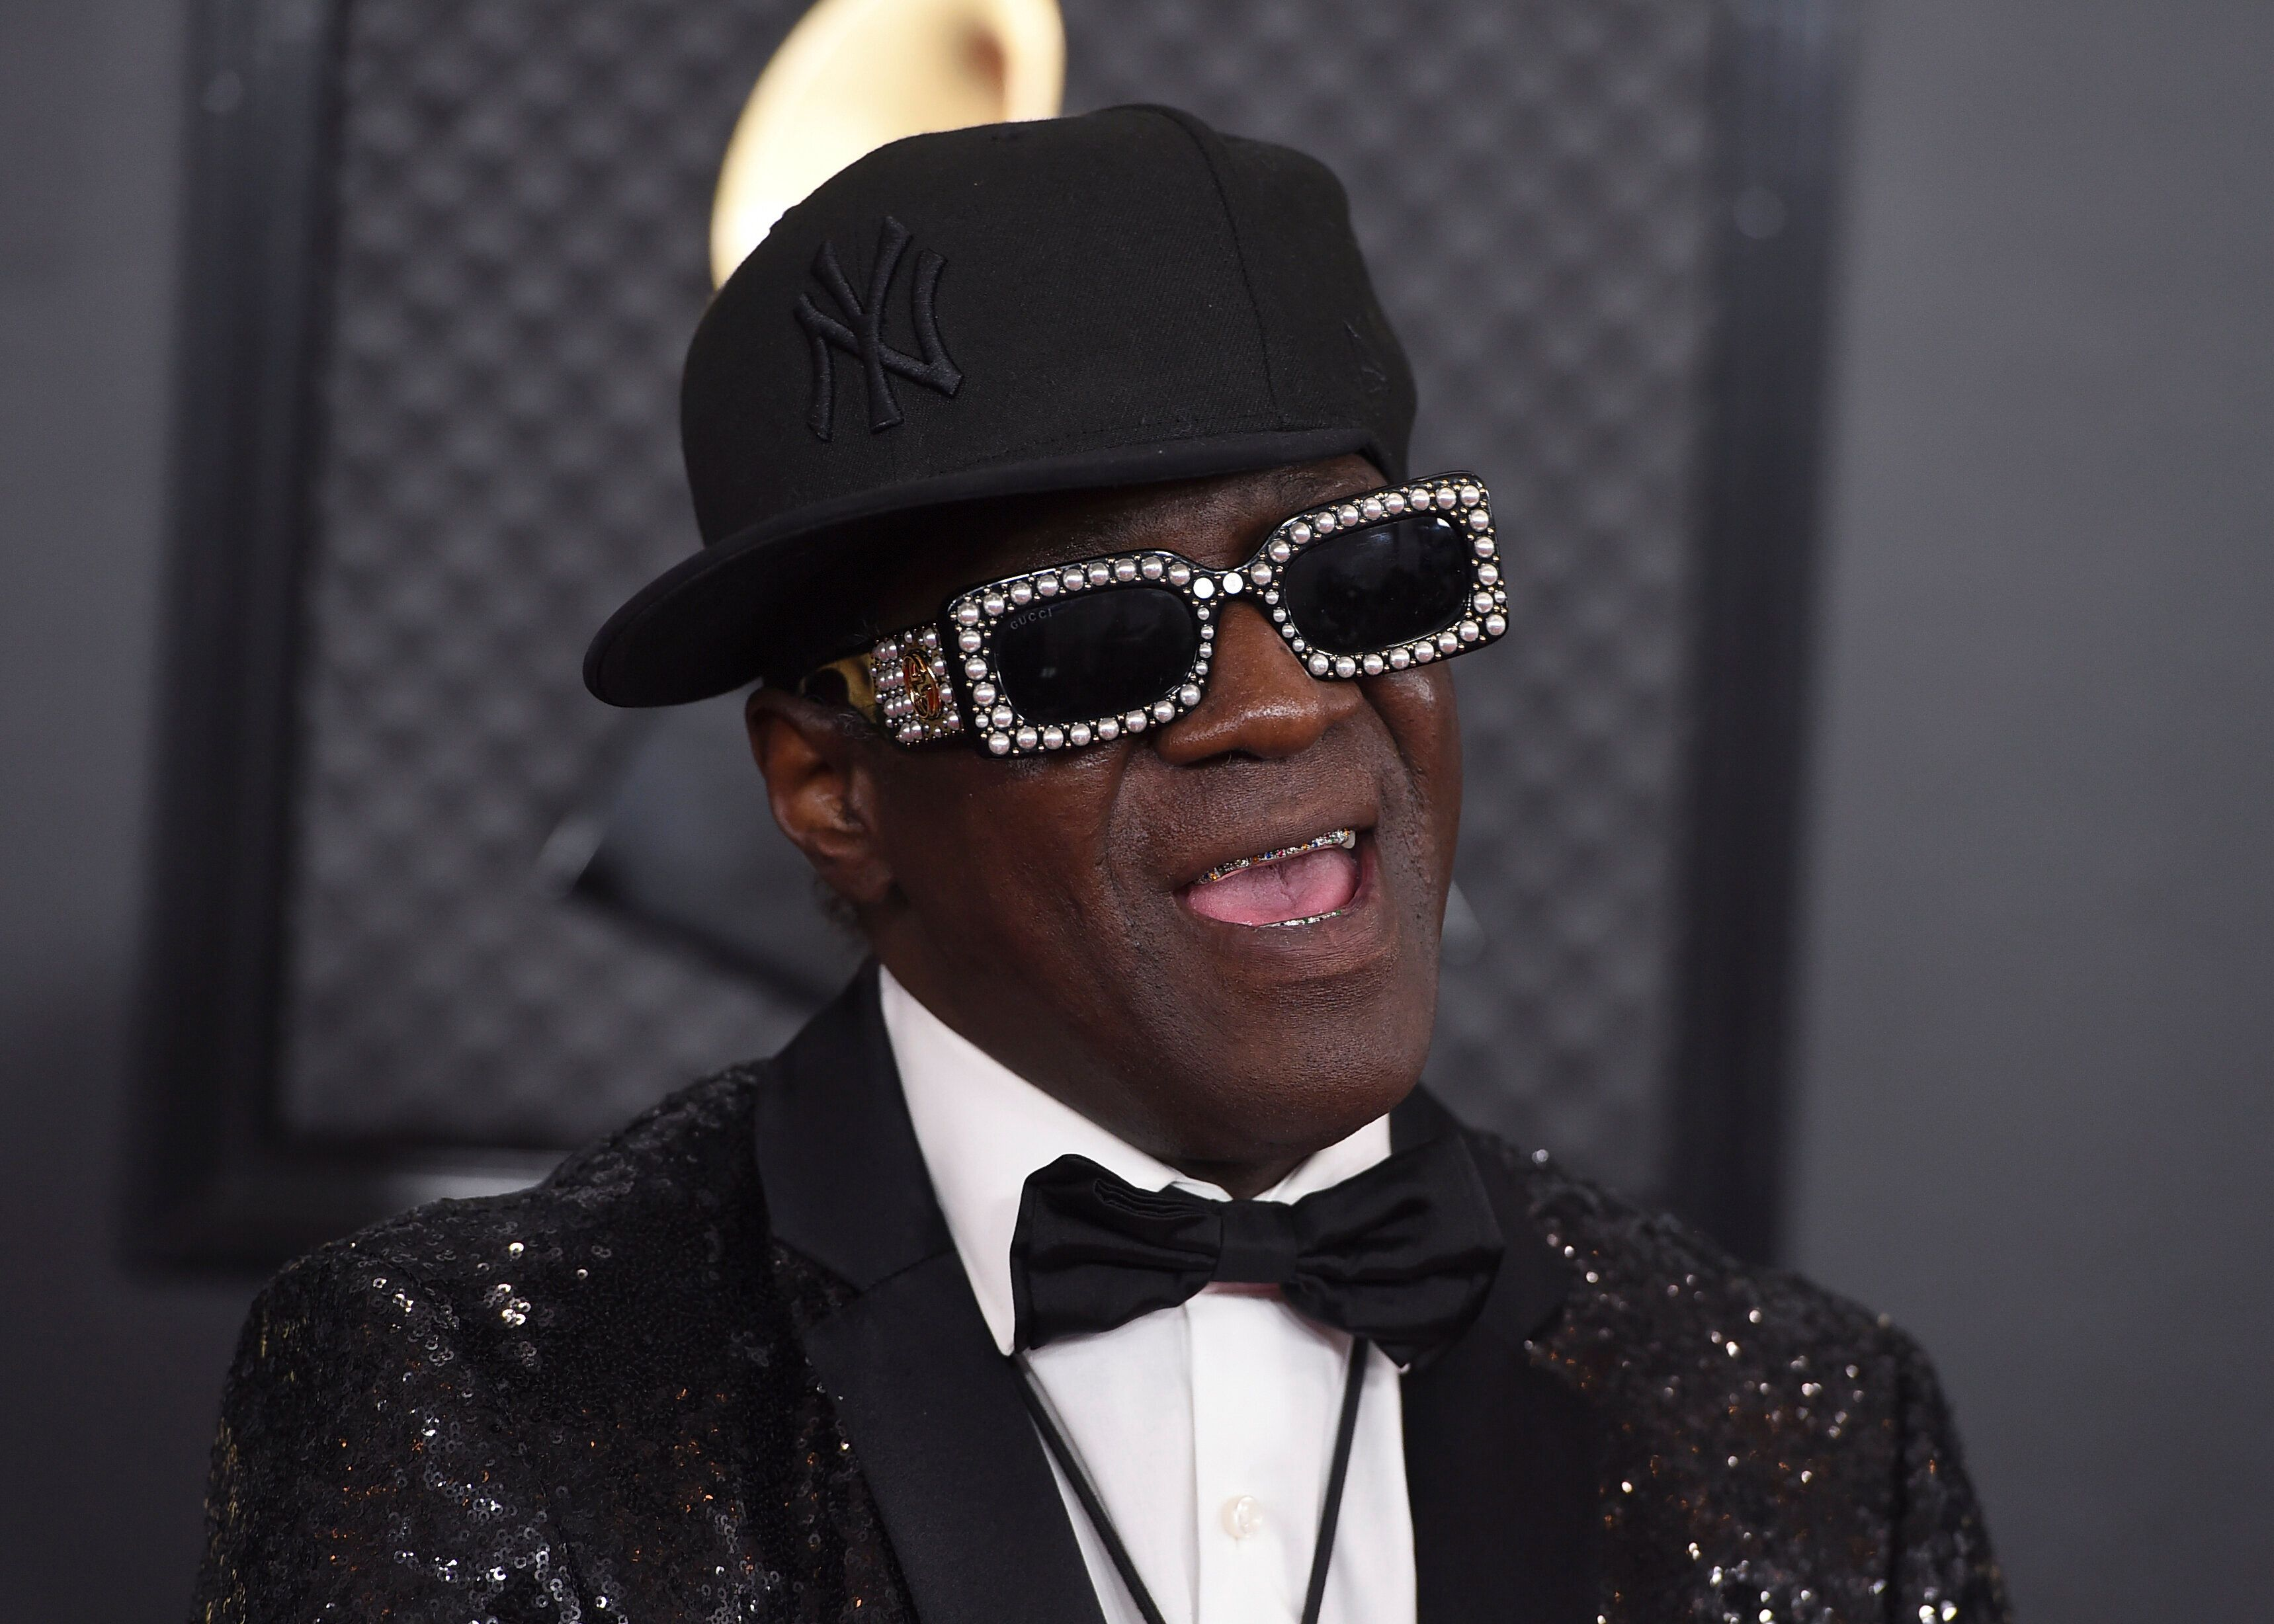 Flavor Flav at the Grammy Awards in January.